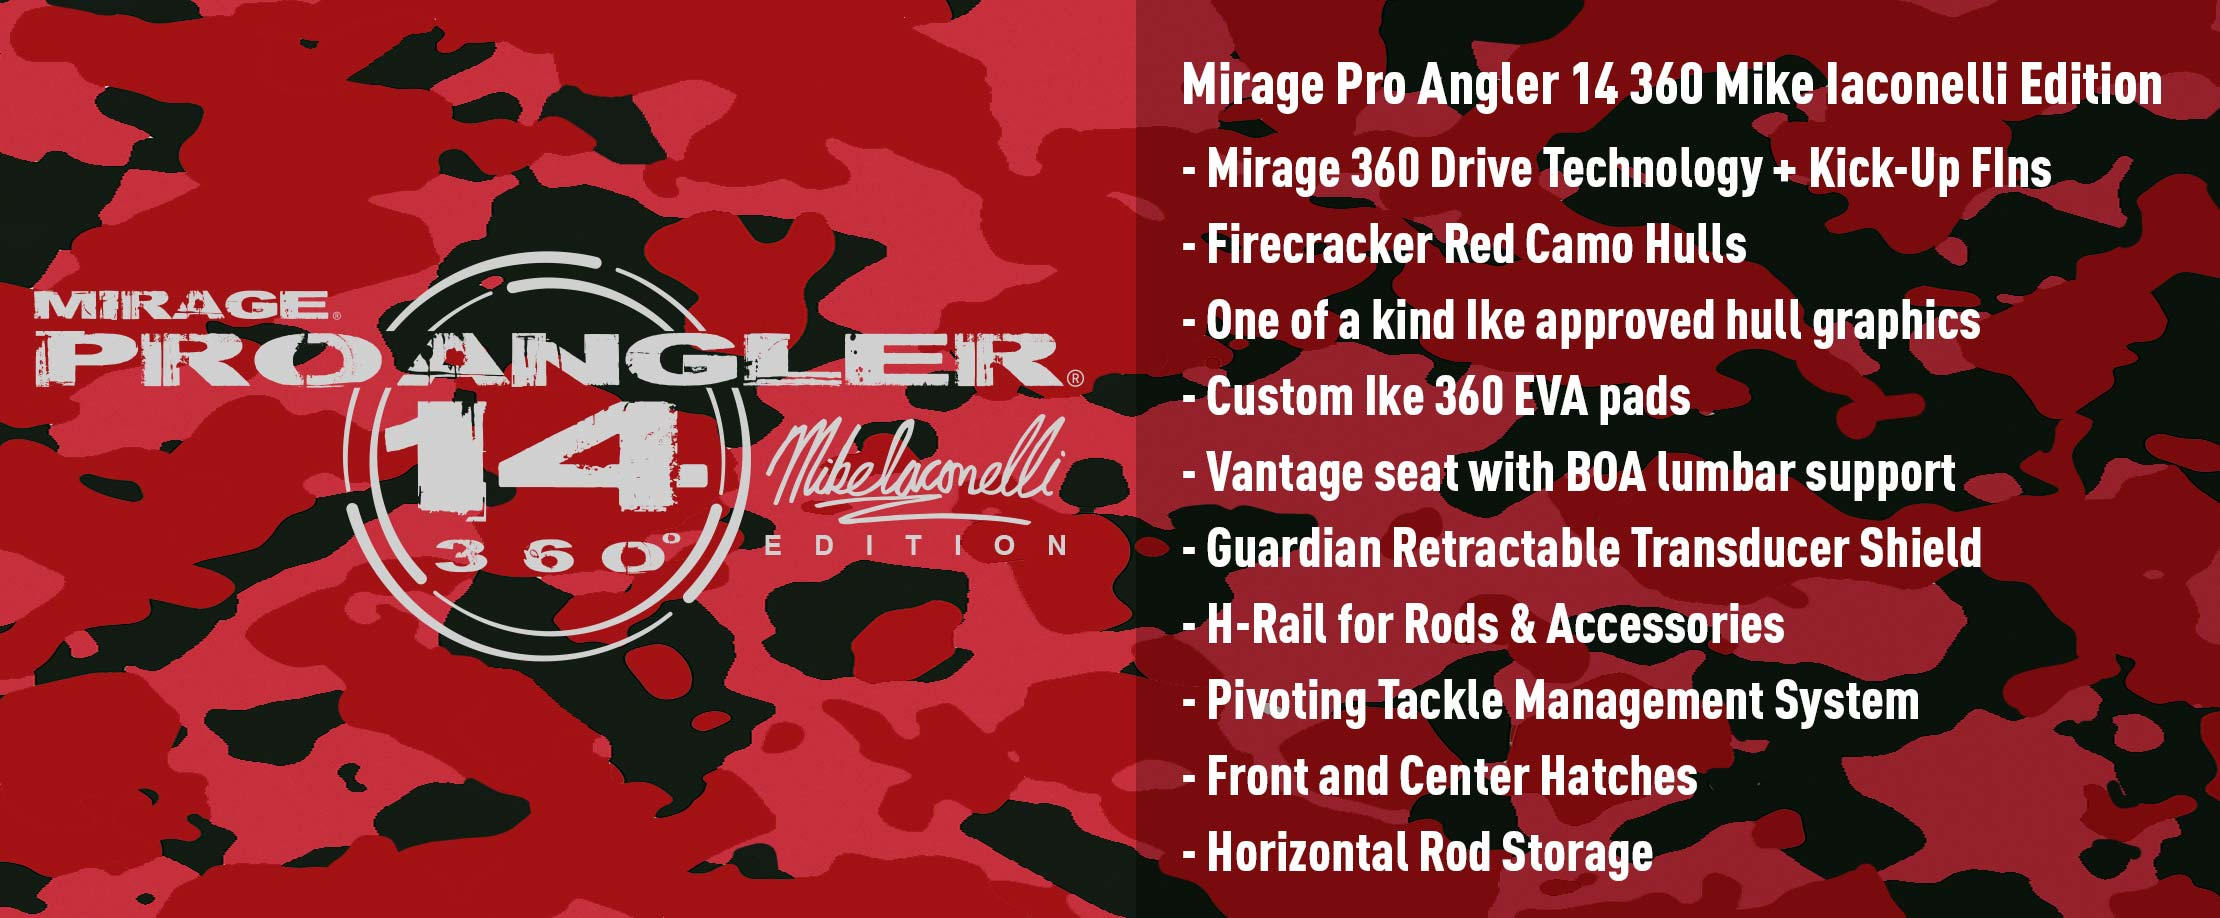 Mirage Pro Angler 14 360 Mike Iaconelli Edition Features